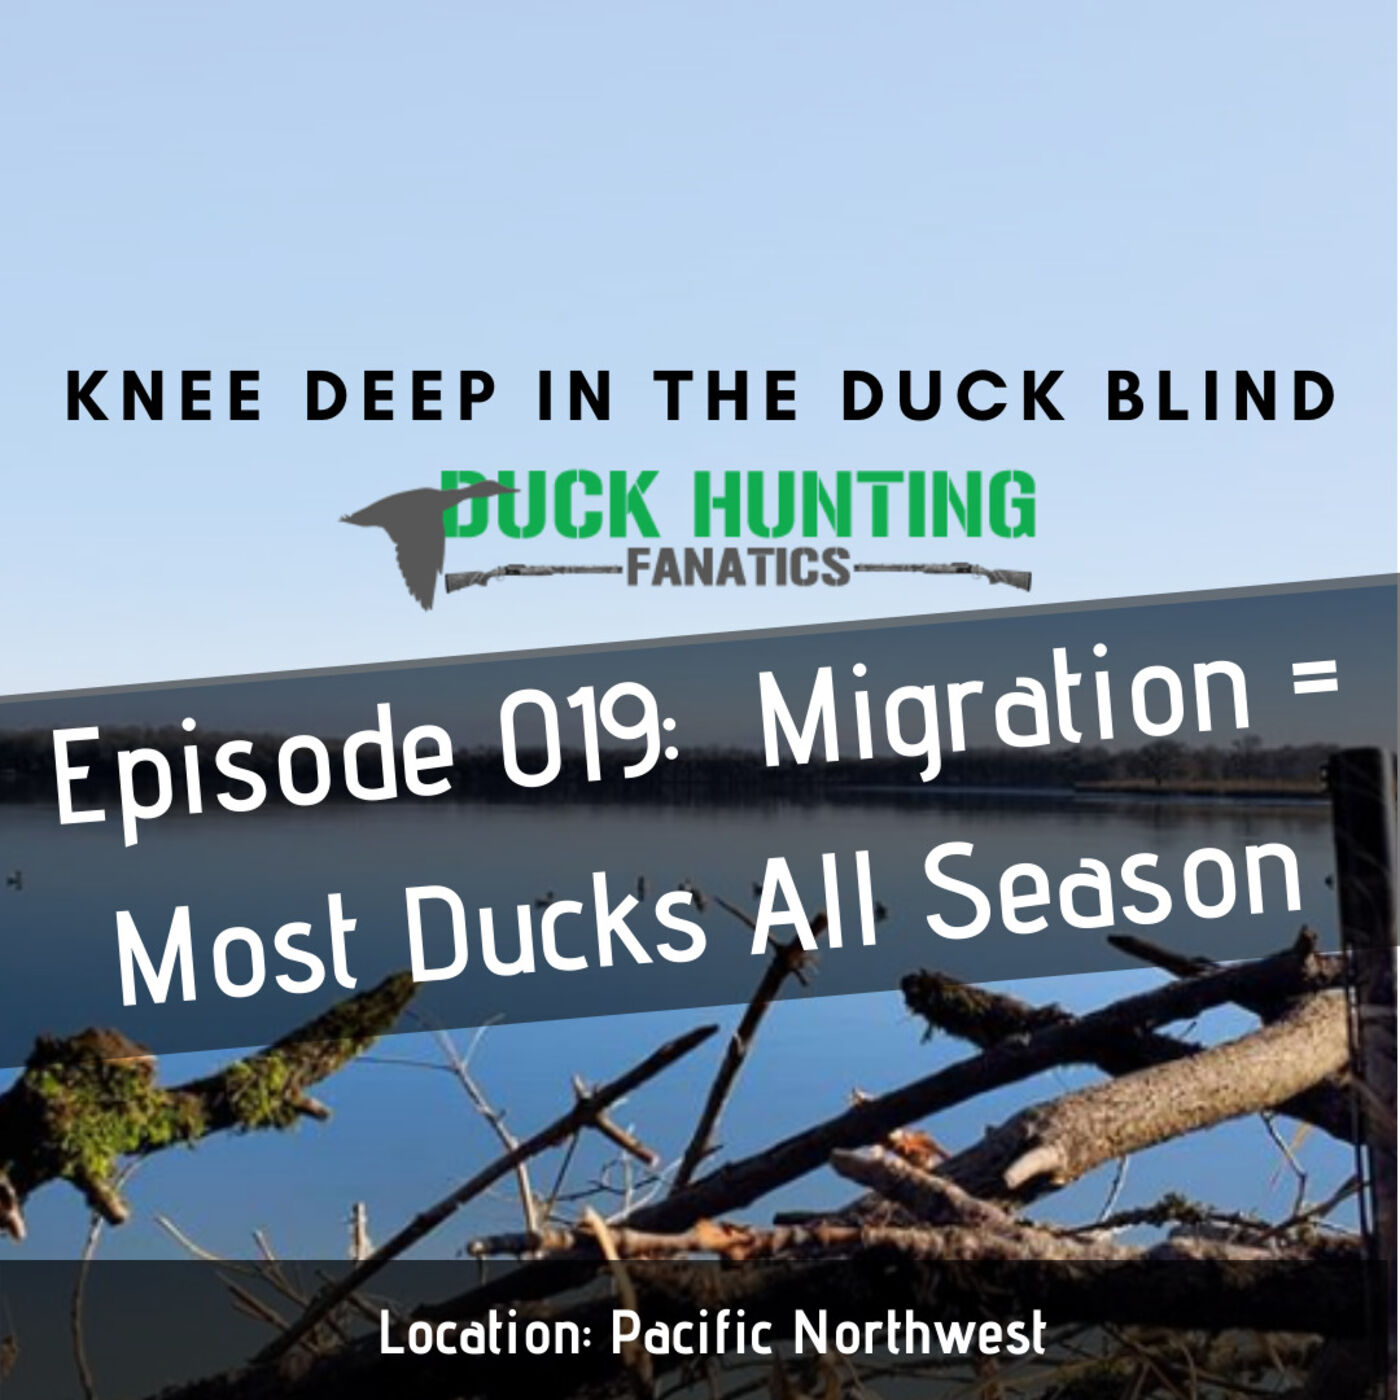 Migration Alert: Pacific NW's most ducks all year